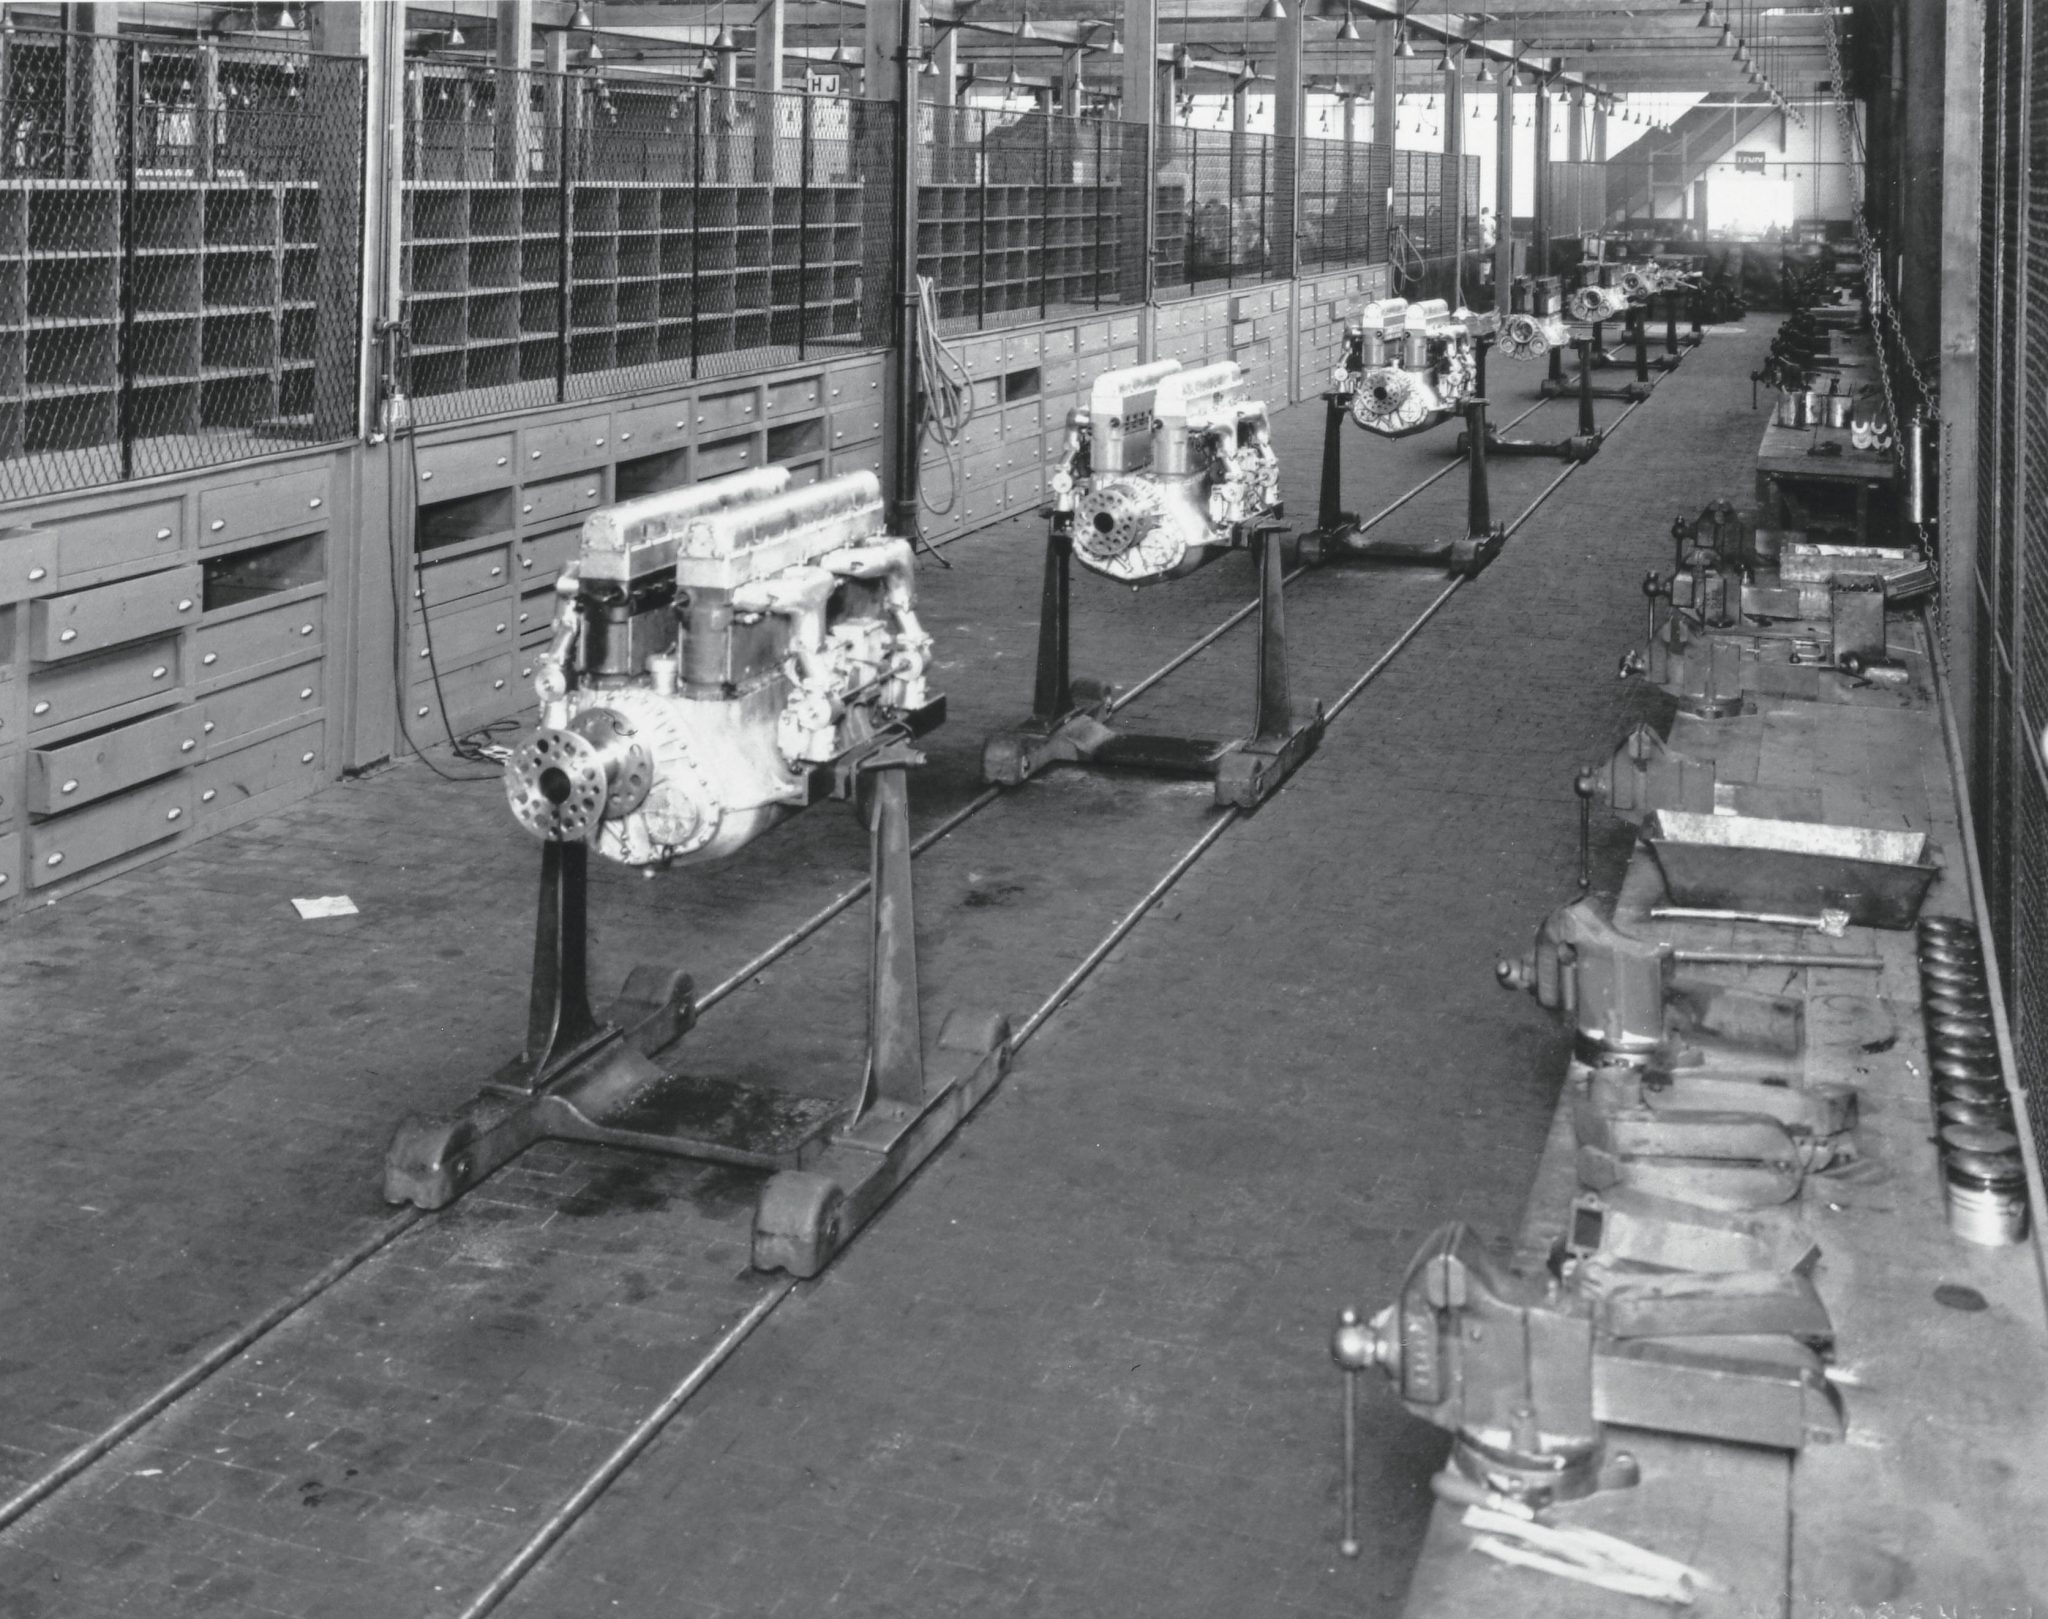 Bugatti U-16 aircraft engine production line